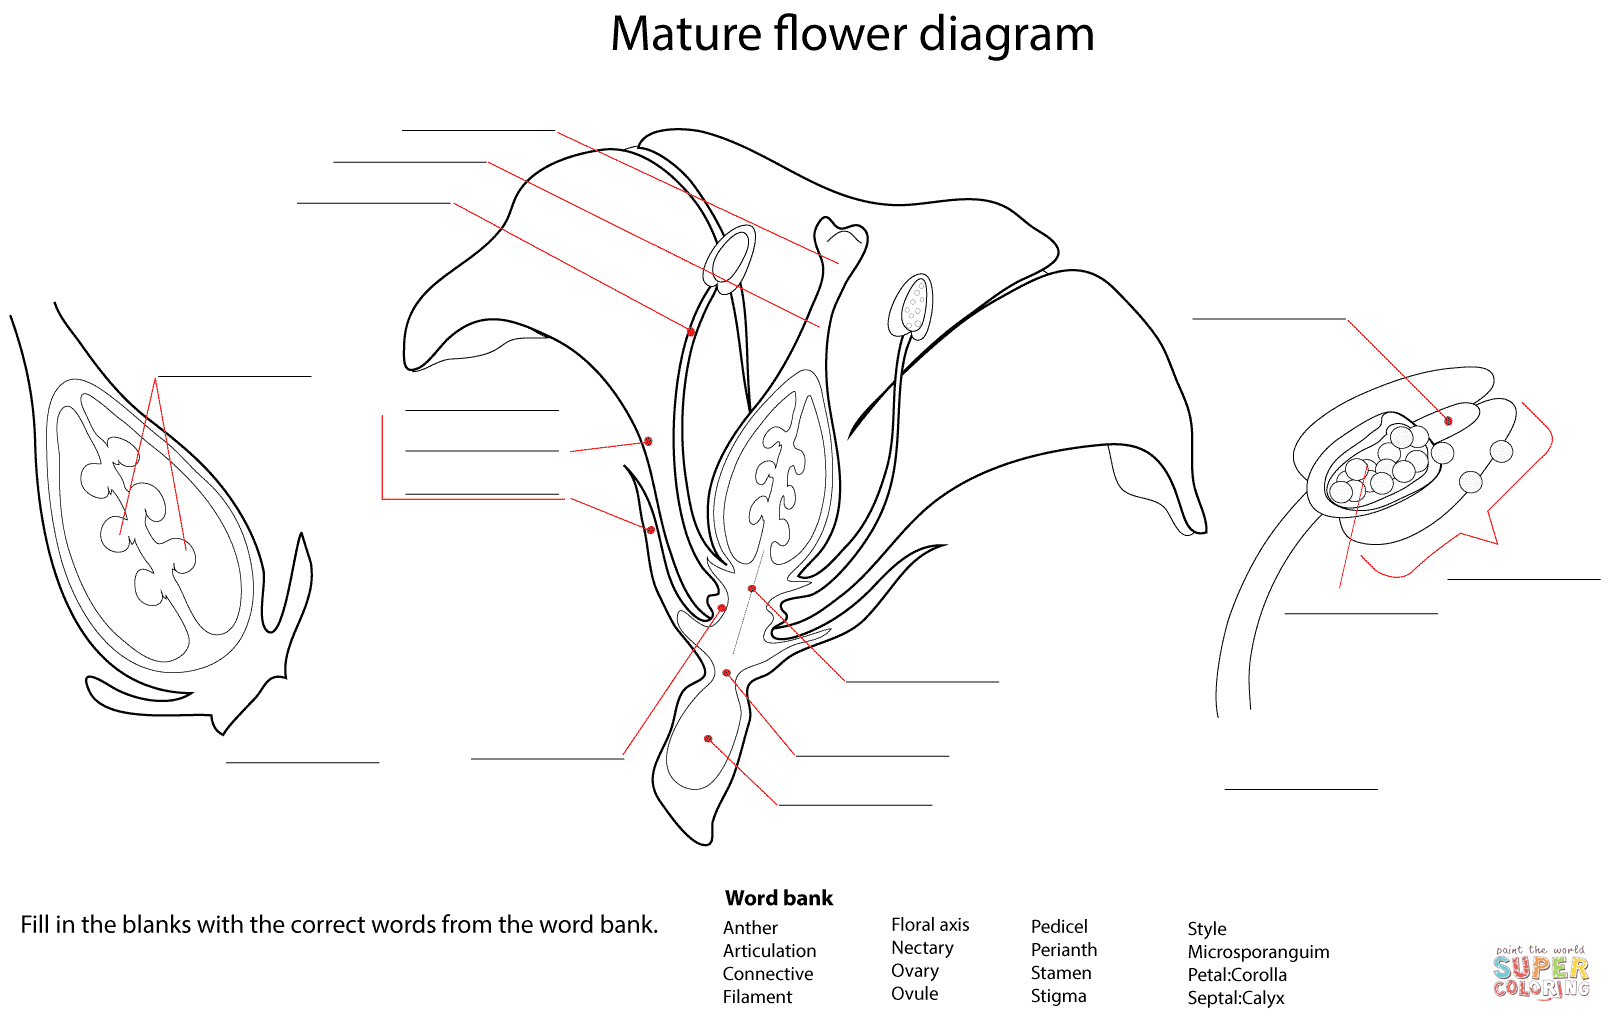 austamaria flower diagram